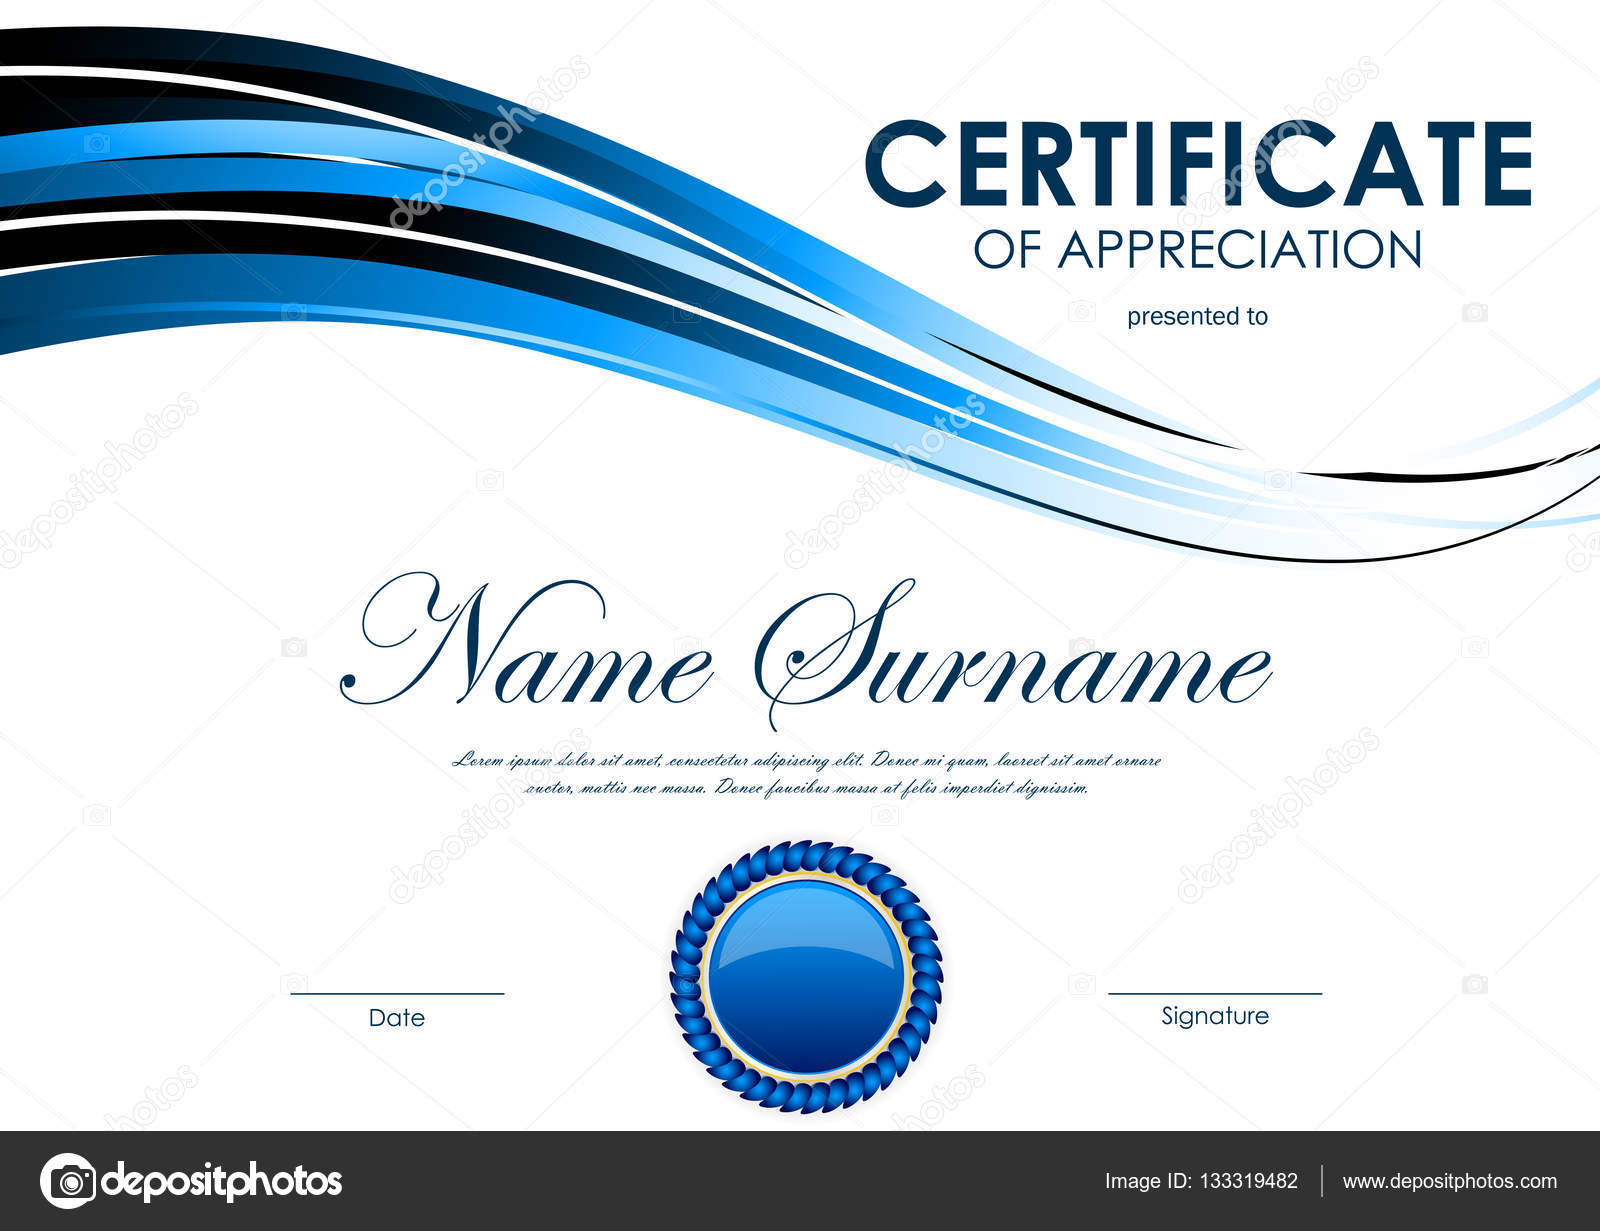 depositphotos_133319482-stock-illustration-certificate-of-appreciation-template.jpg